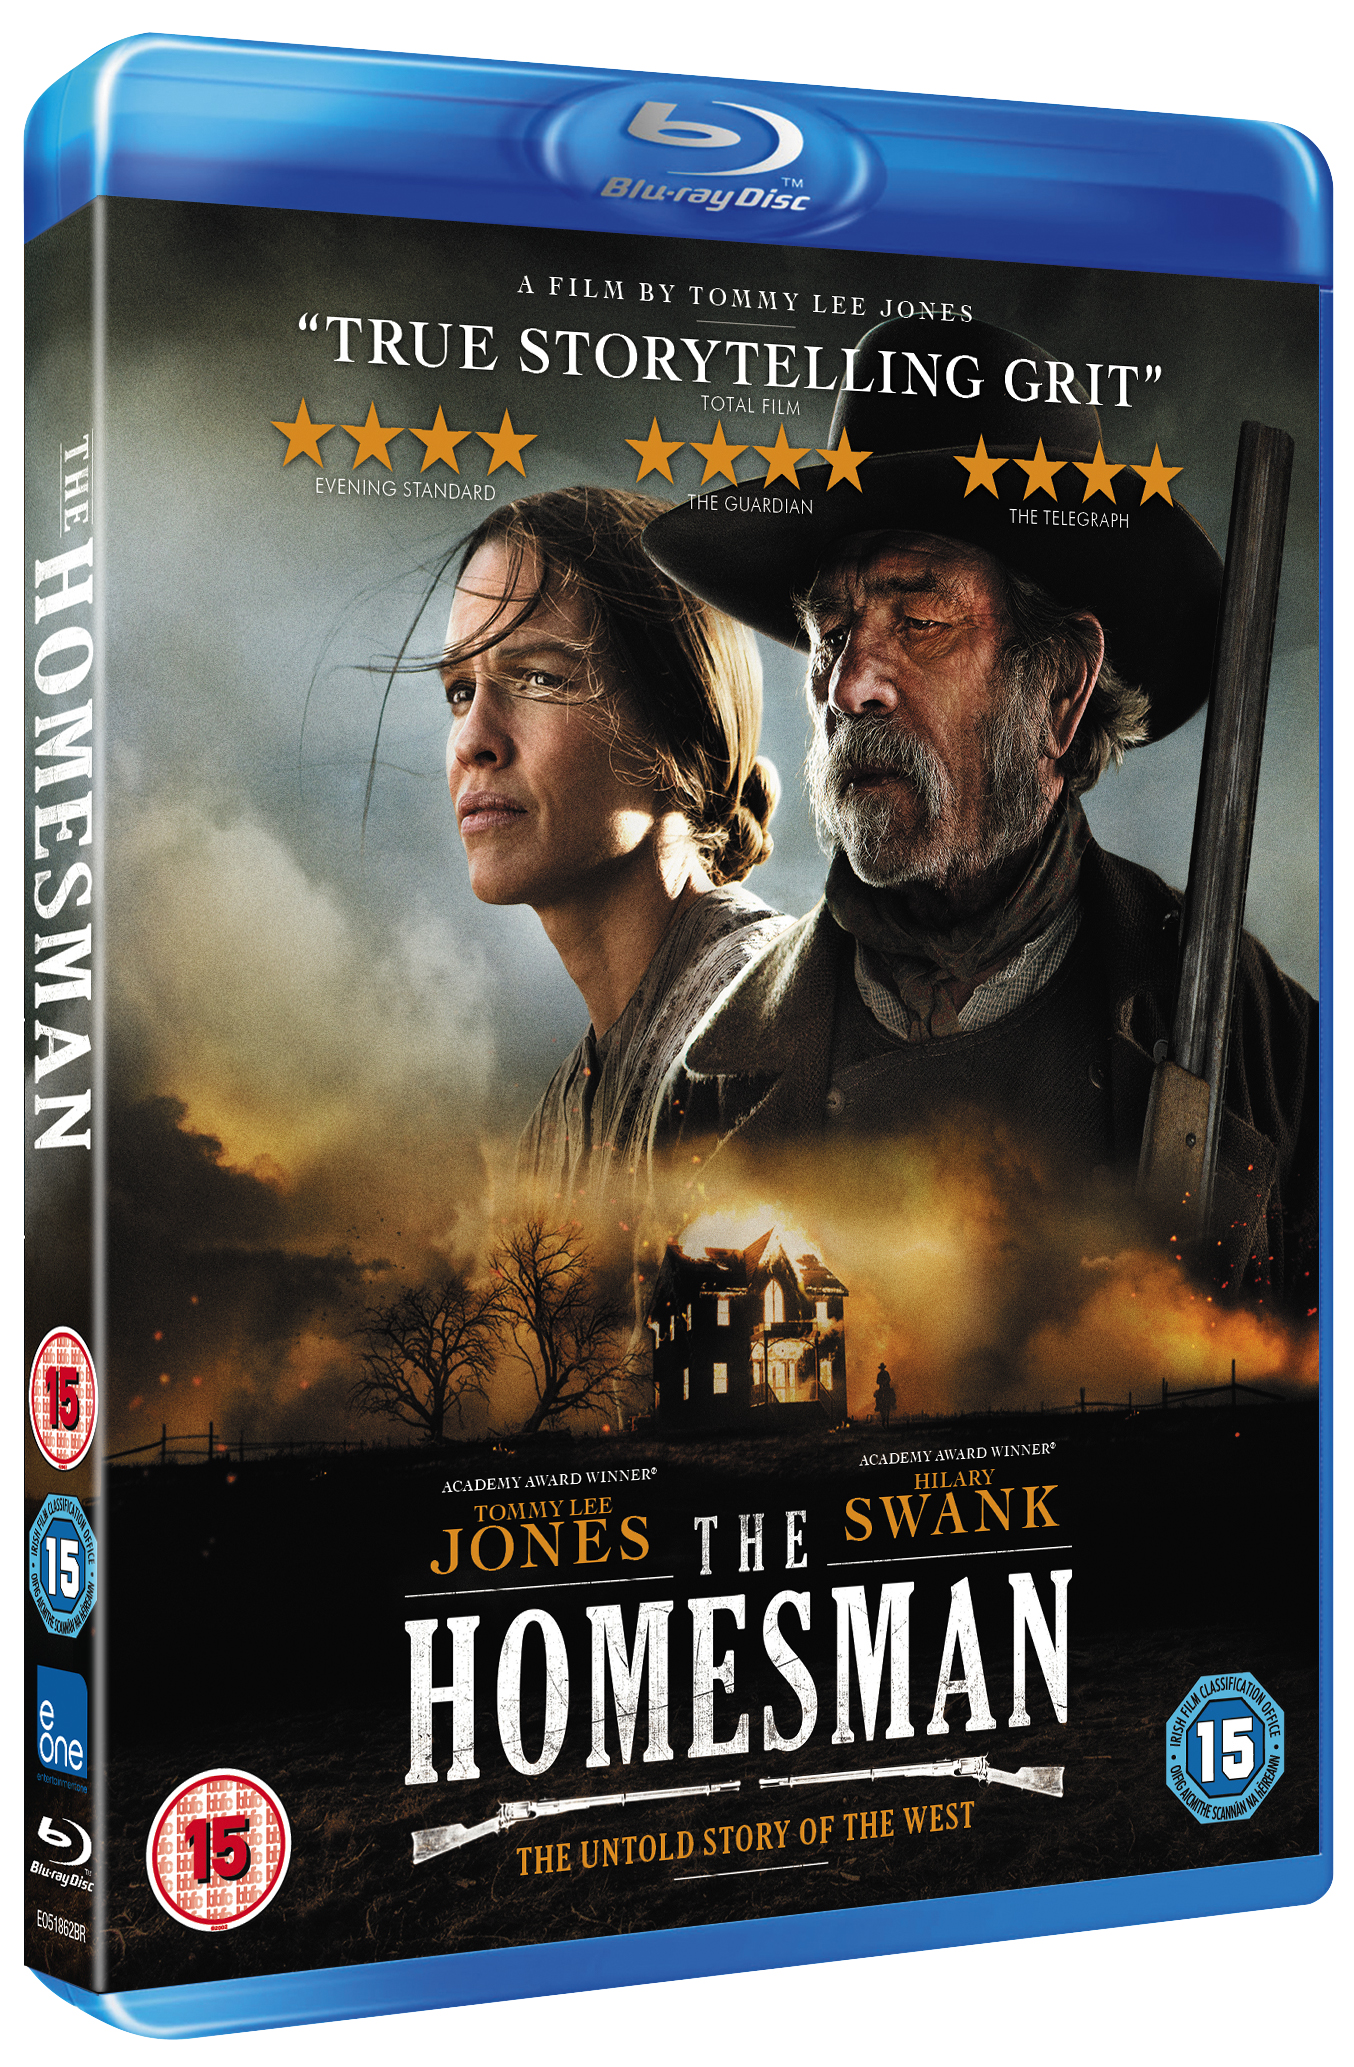 Win The Homesman on Bl...Hilary Swank Jewish